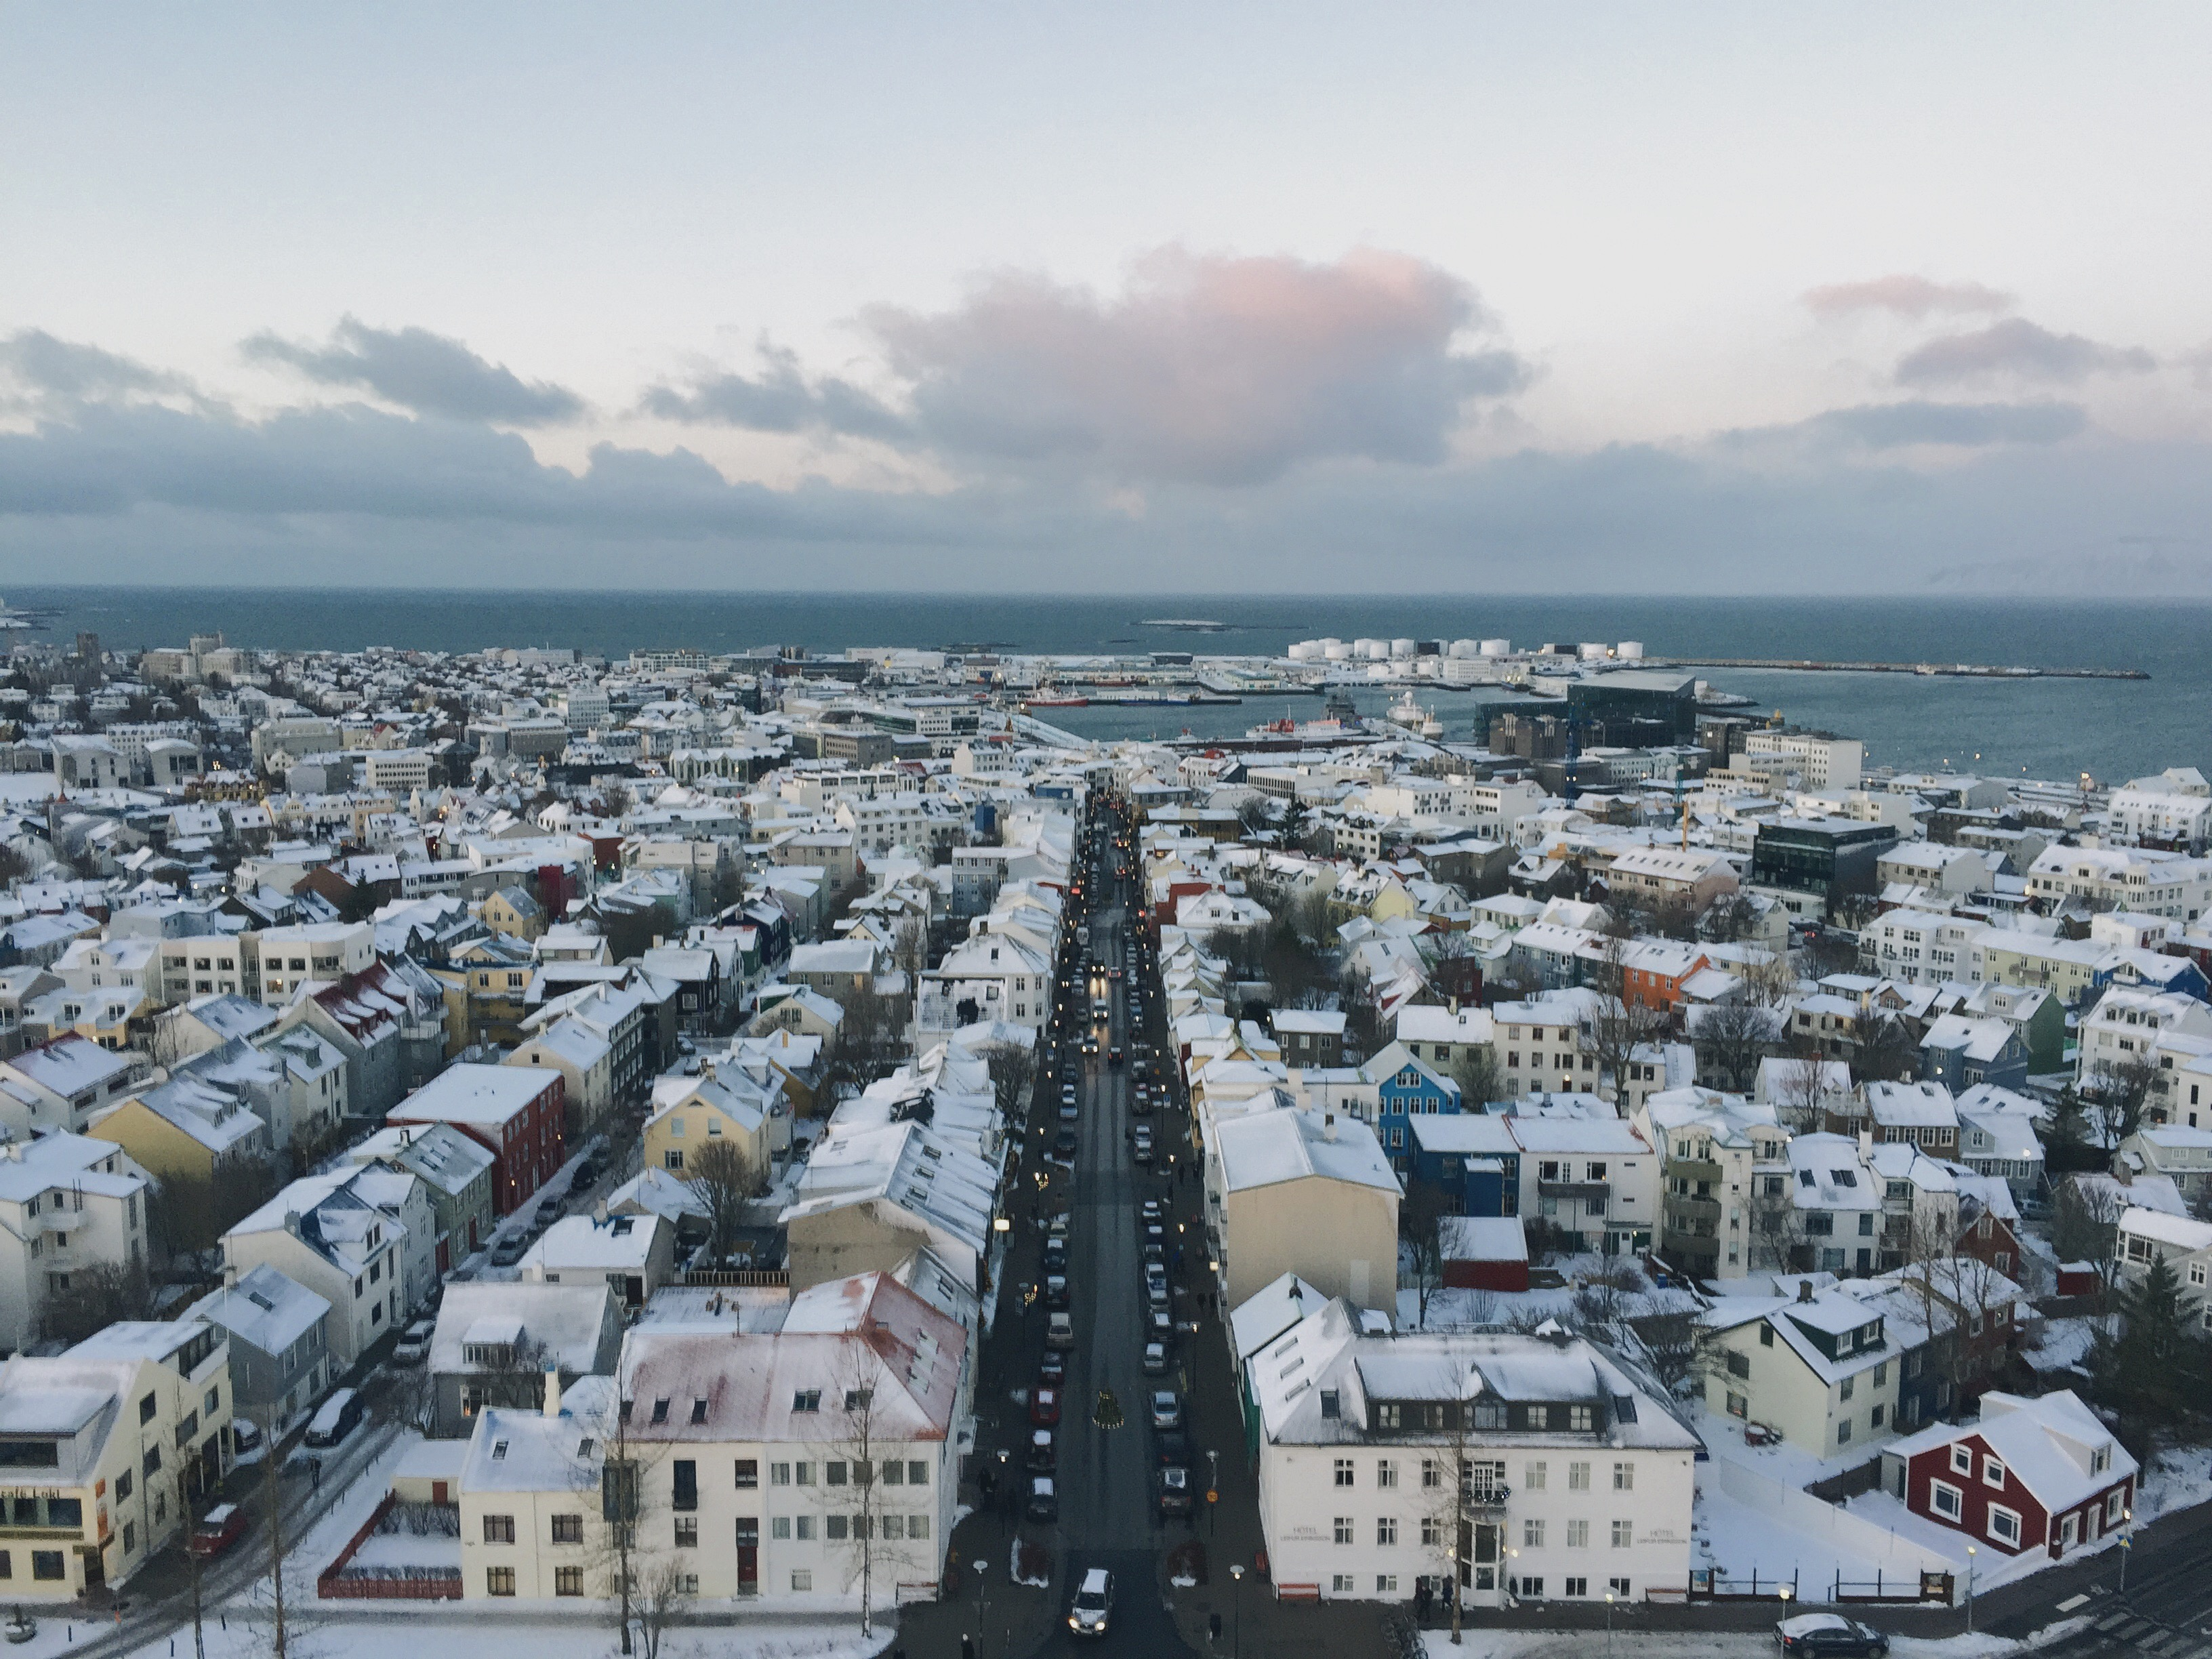 The colourful houses of downtown Reykjavík can be seen from the top of its most iconic landmark, Hallgrímskirkja.